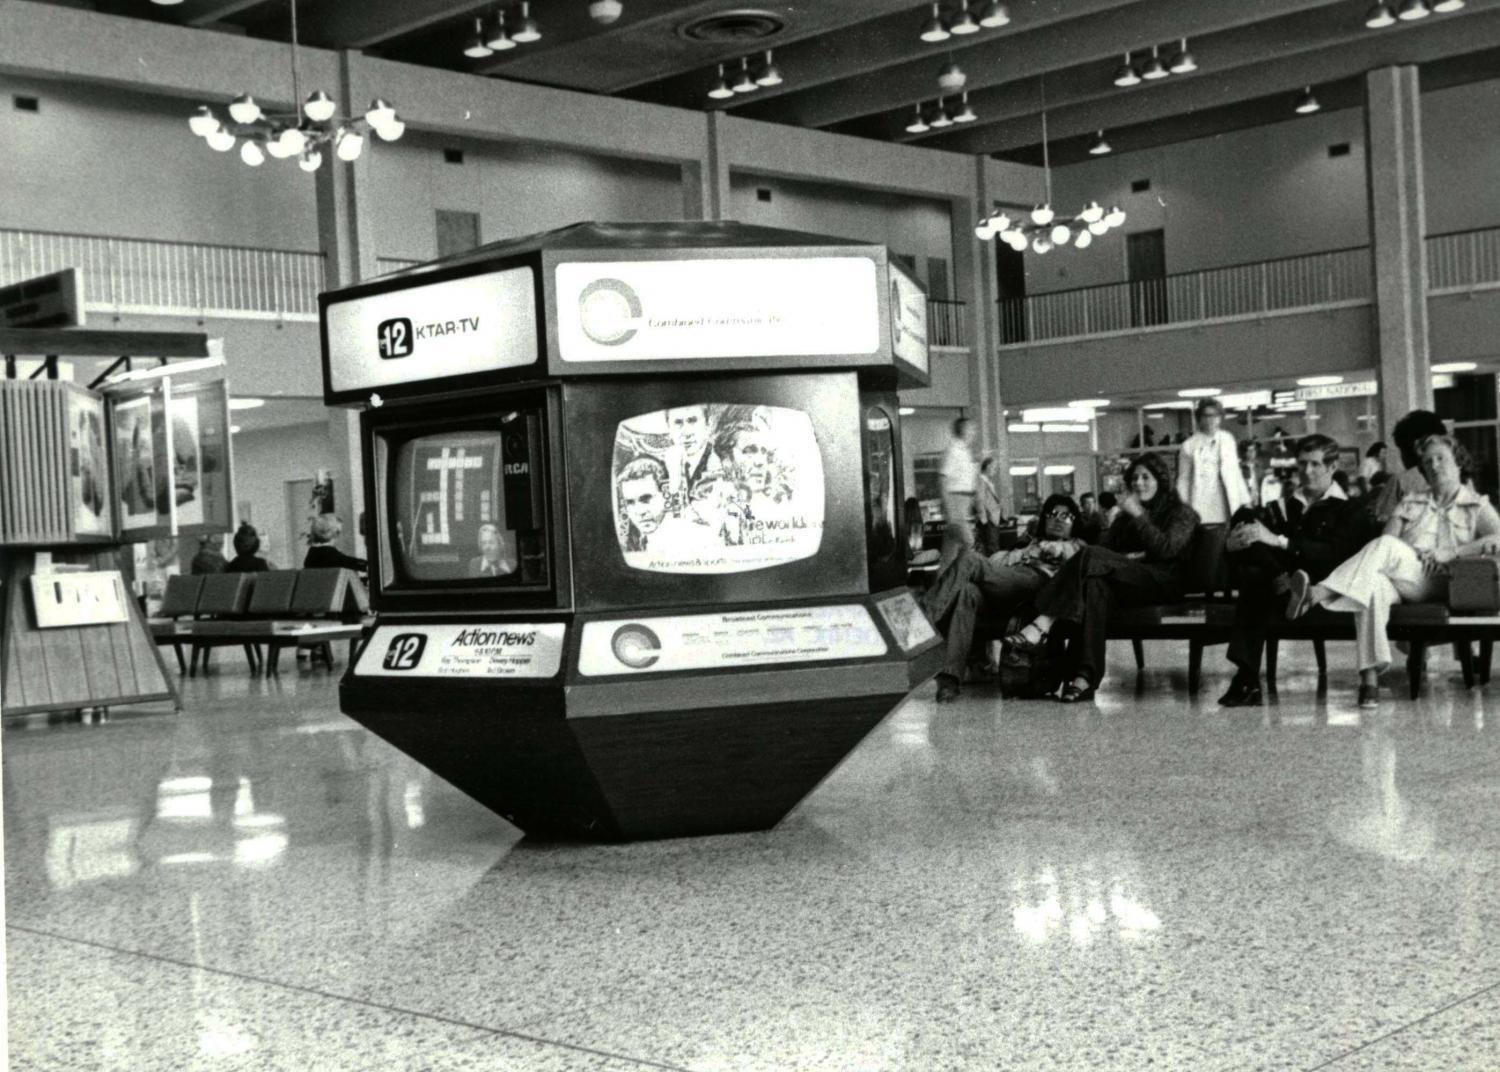 kiosk and people inside terminal